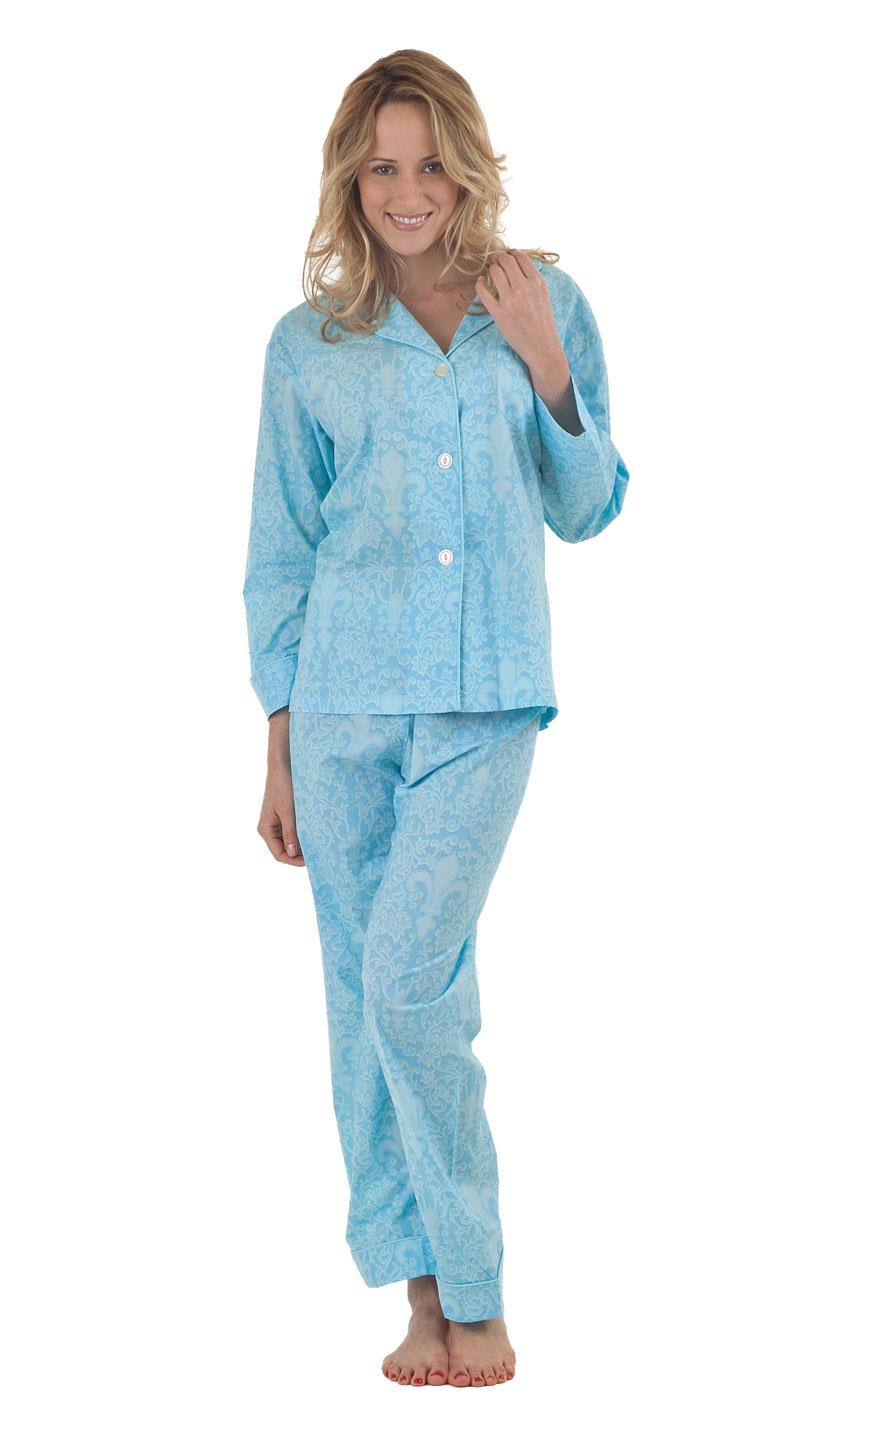 Girls' pajama sets typically come with one top and one bottom, but sets sometimes feature an additional bottom. In that case, one of the bottom pieces will be long .